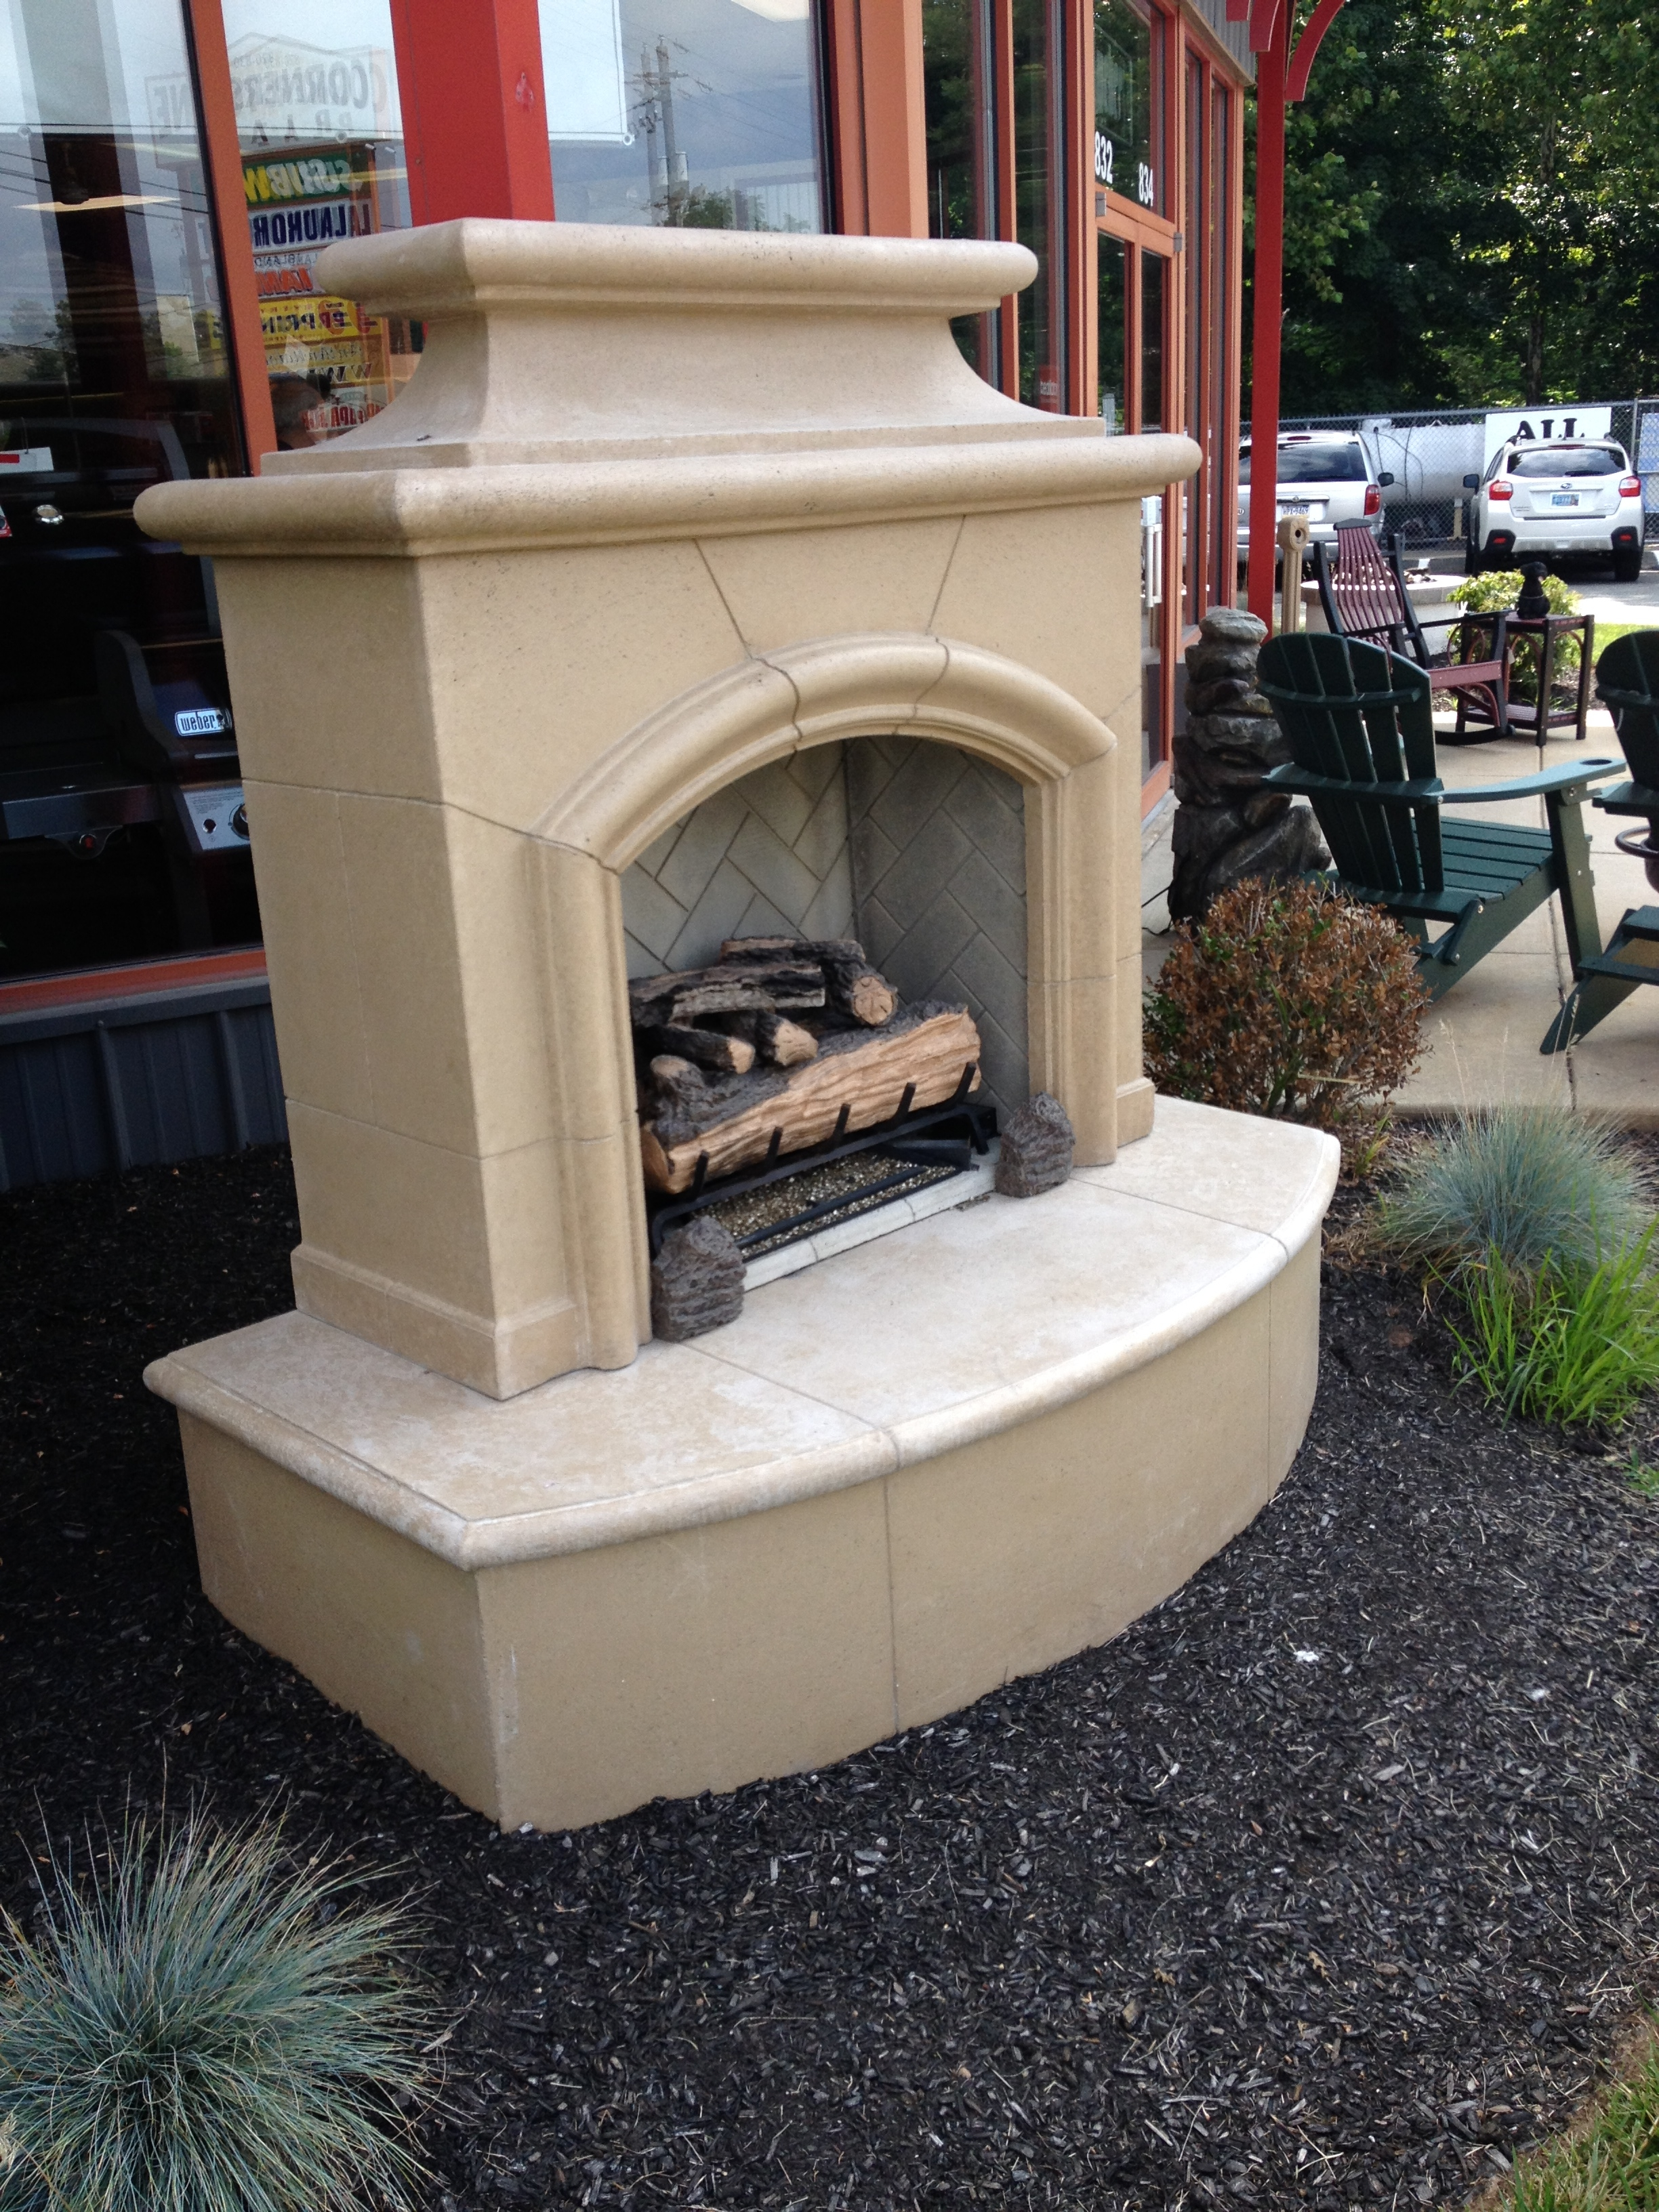 Krings Hearth & Home image 1